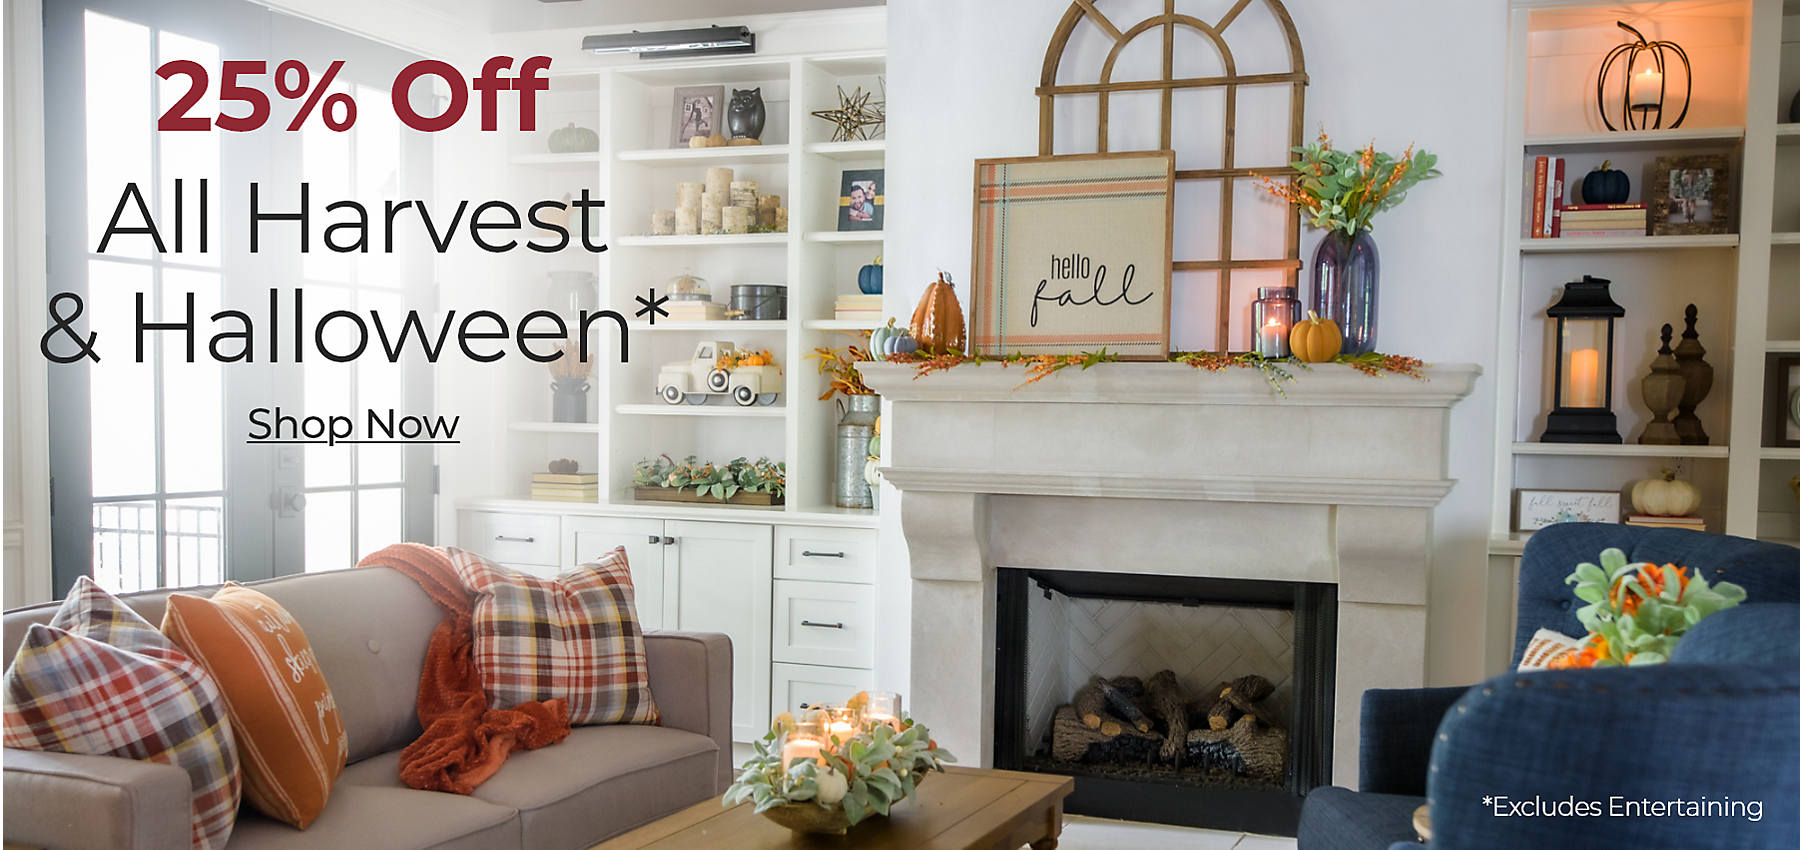 All Harvest & Halloween 25% Off Excludes Fall Entertaining Shop Now